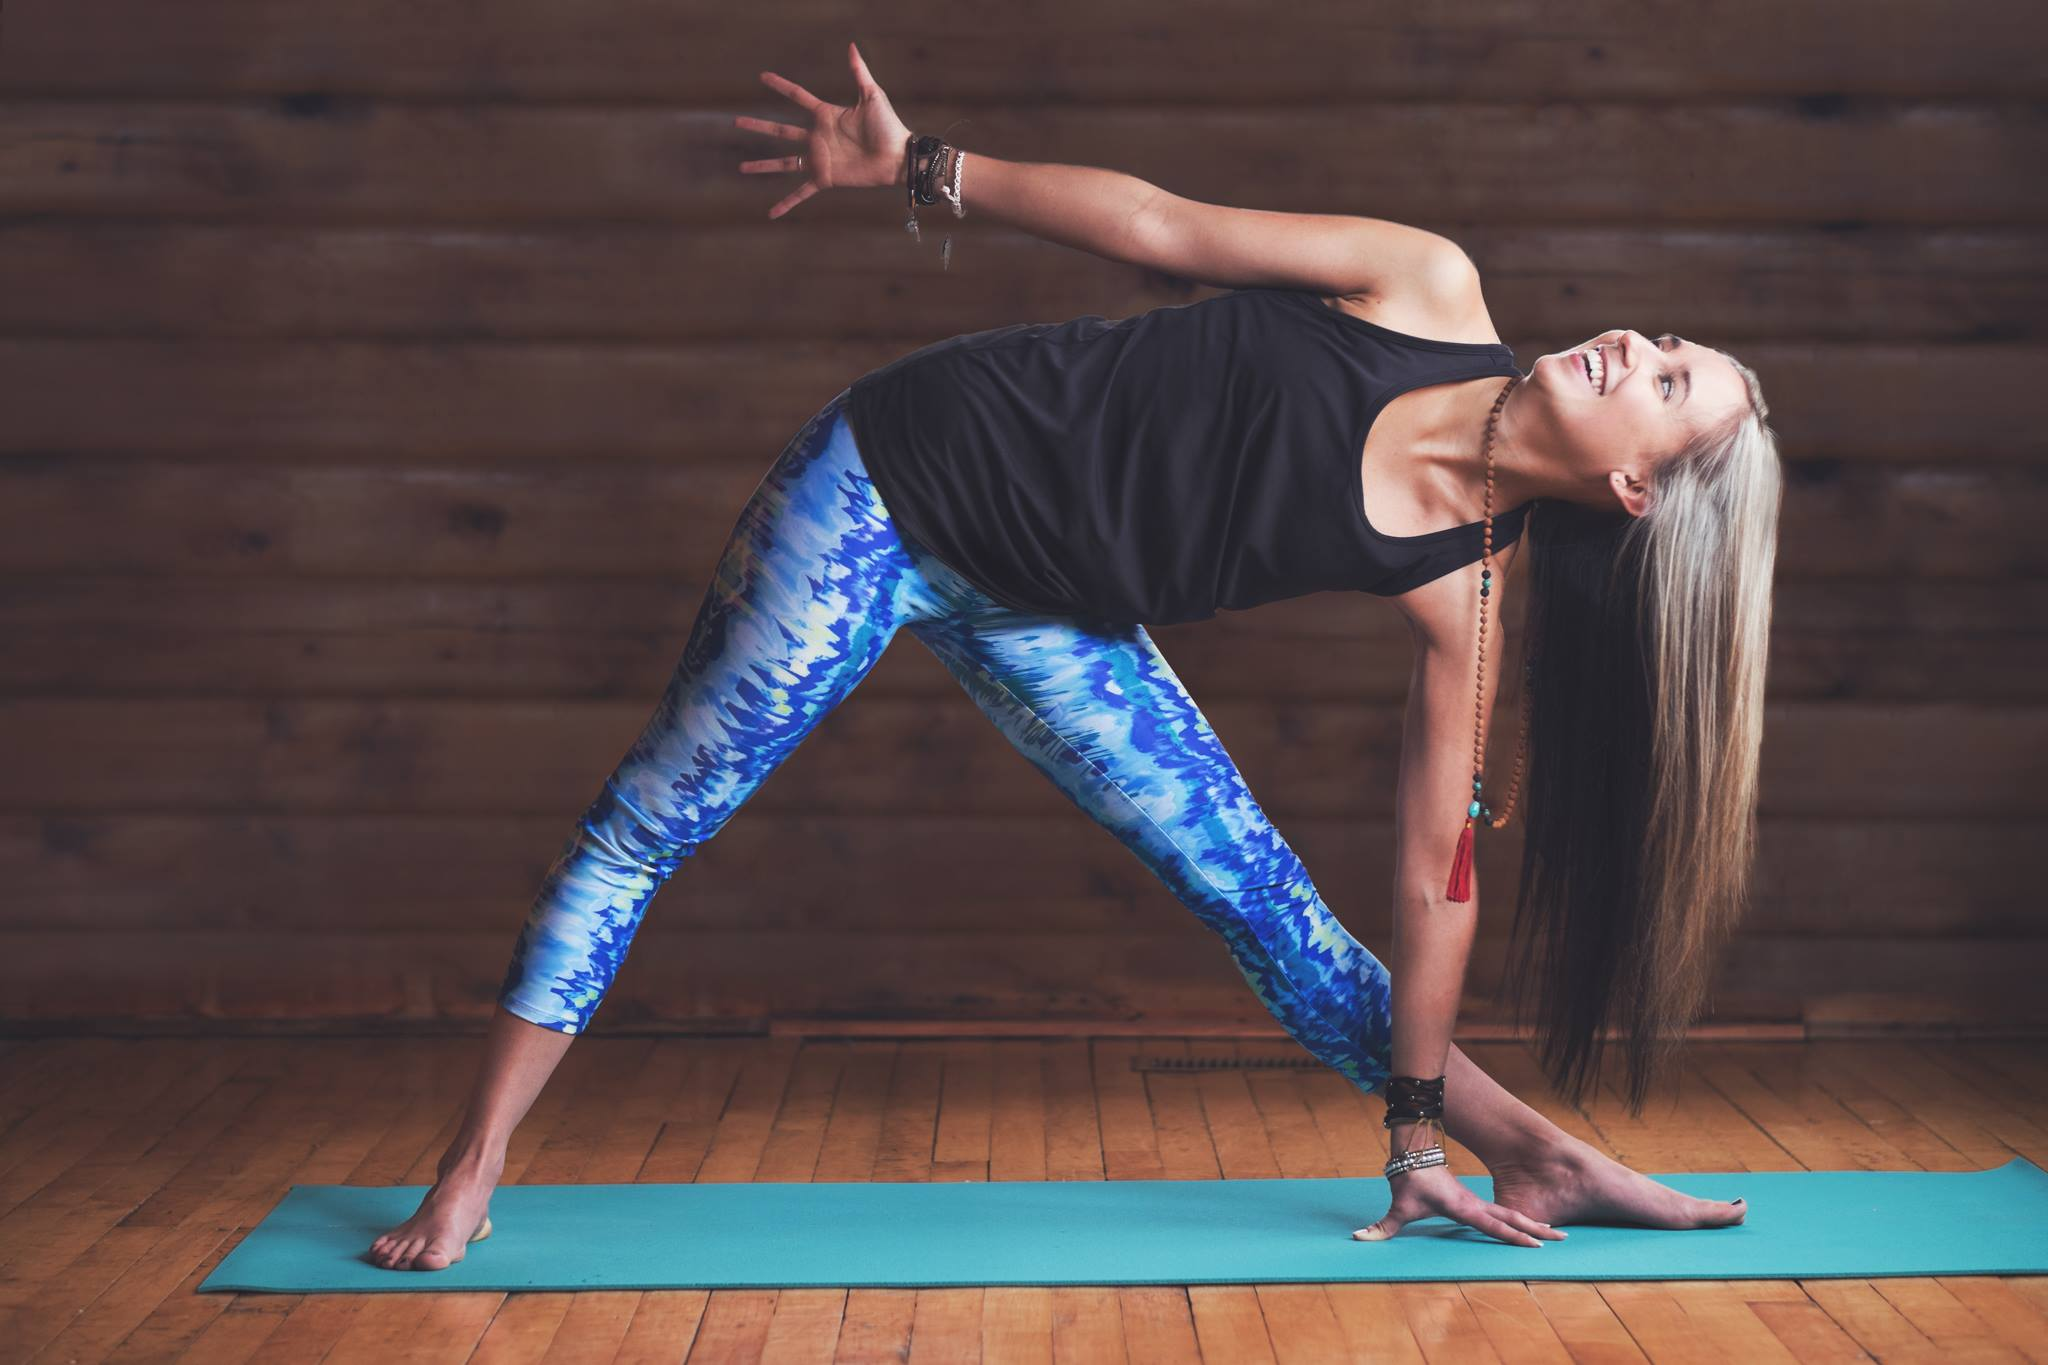 10 raisons de faire du Yoga quand on est CrossFitter (Partie 1)